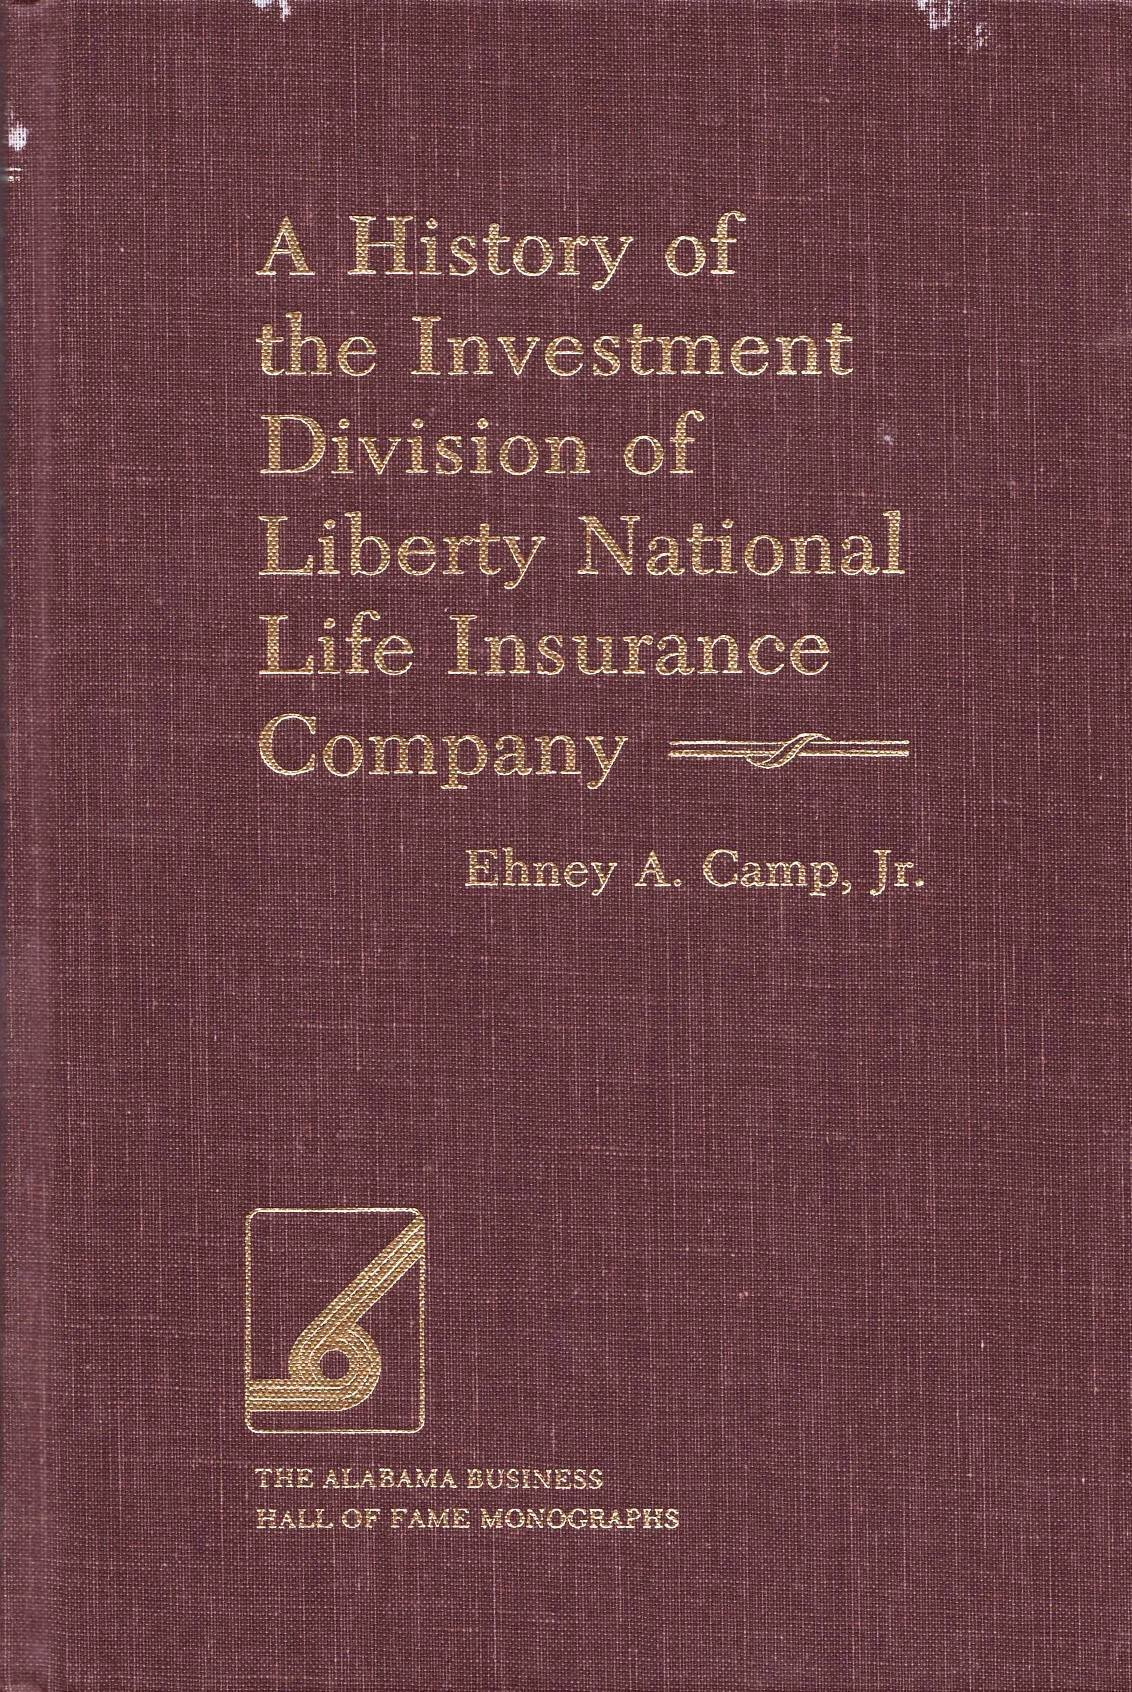 A History Of The Investment Division Of Liberty National Life